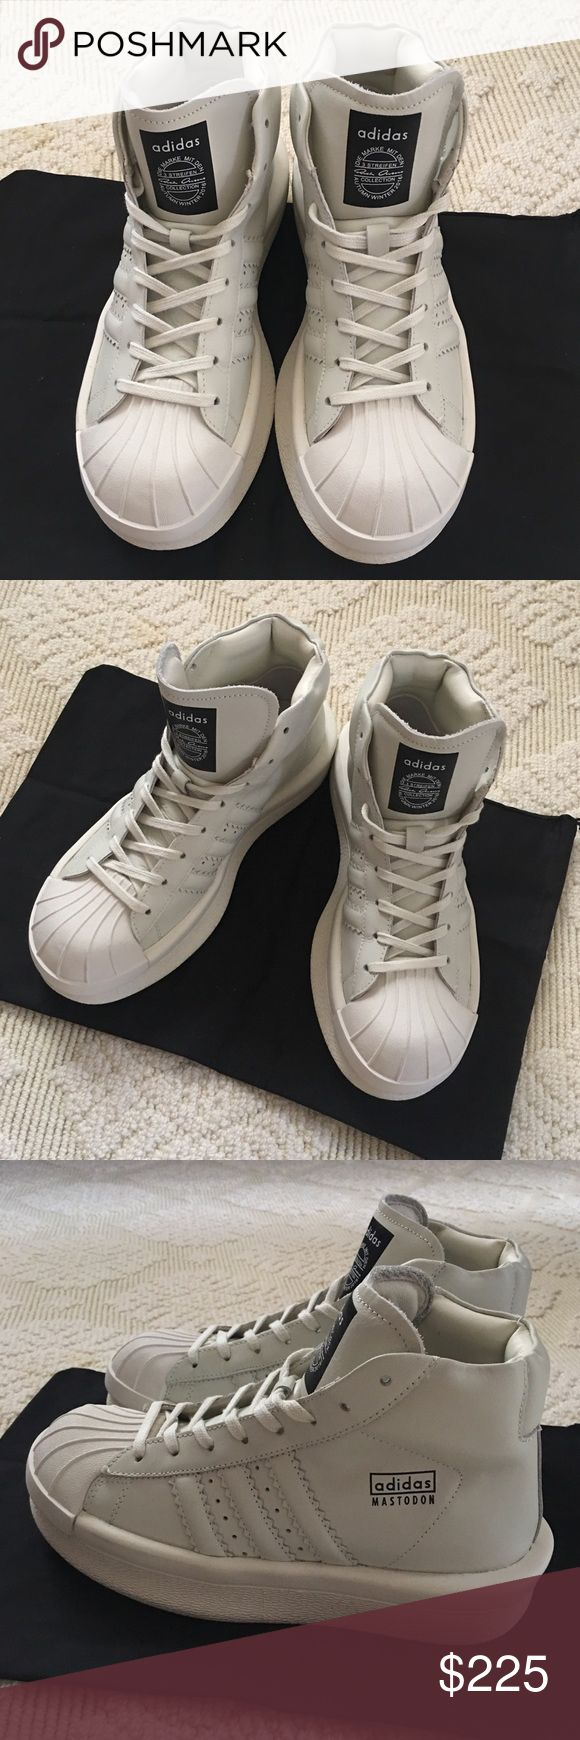 Adidas x Rick Owens 'Mastodon Pro' NEW Adidas x Rick Owens 'Mastodon Pro' ! Brand new! Never worn! Got it as a gift from a friend but it's way too big for me, it's men shoes but I would say it fits a 7-7.5 in women. These are retailed at $1K, but I'm not a big sneaker person so I don't know if these are 💯 authentic, that is why I'm posting it at such low price, so please don't message me regarding its authenticity, if you want the 💯 authentic pair, go directly to the store or their online…